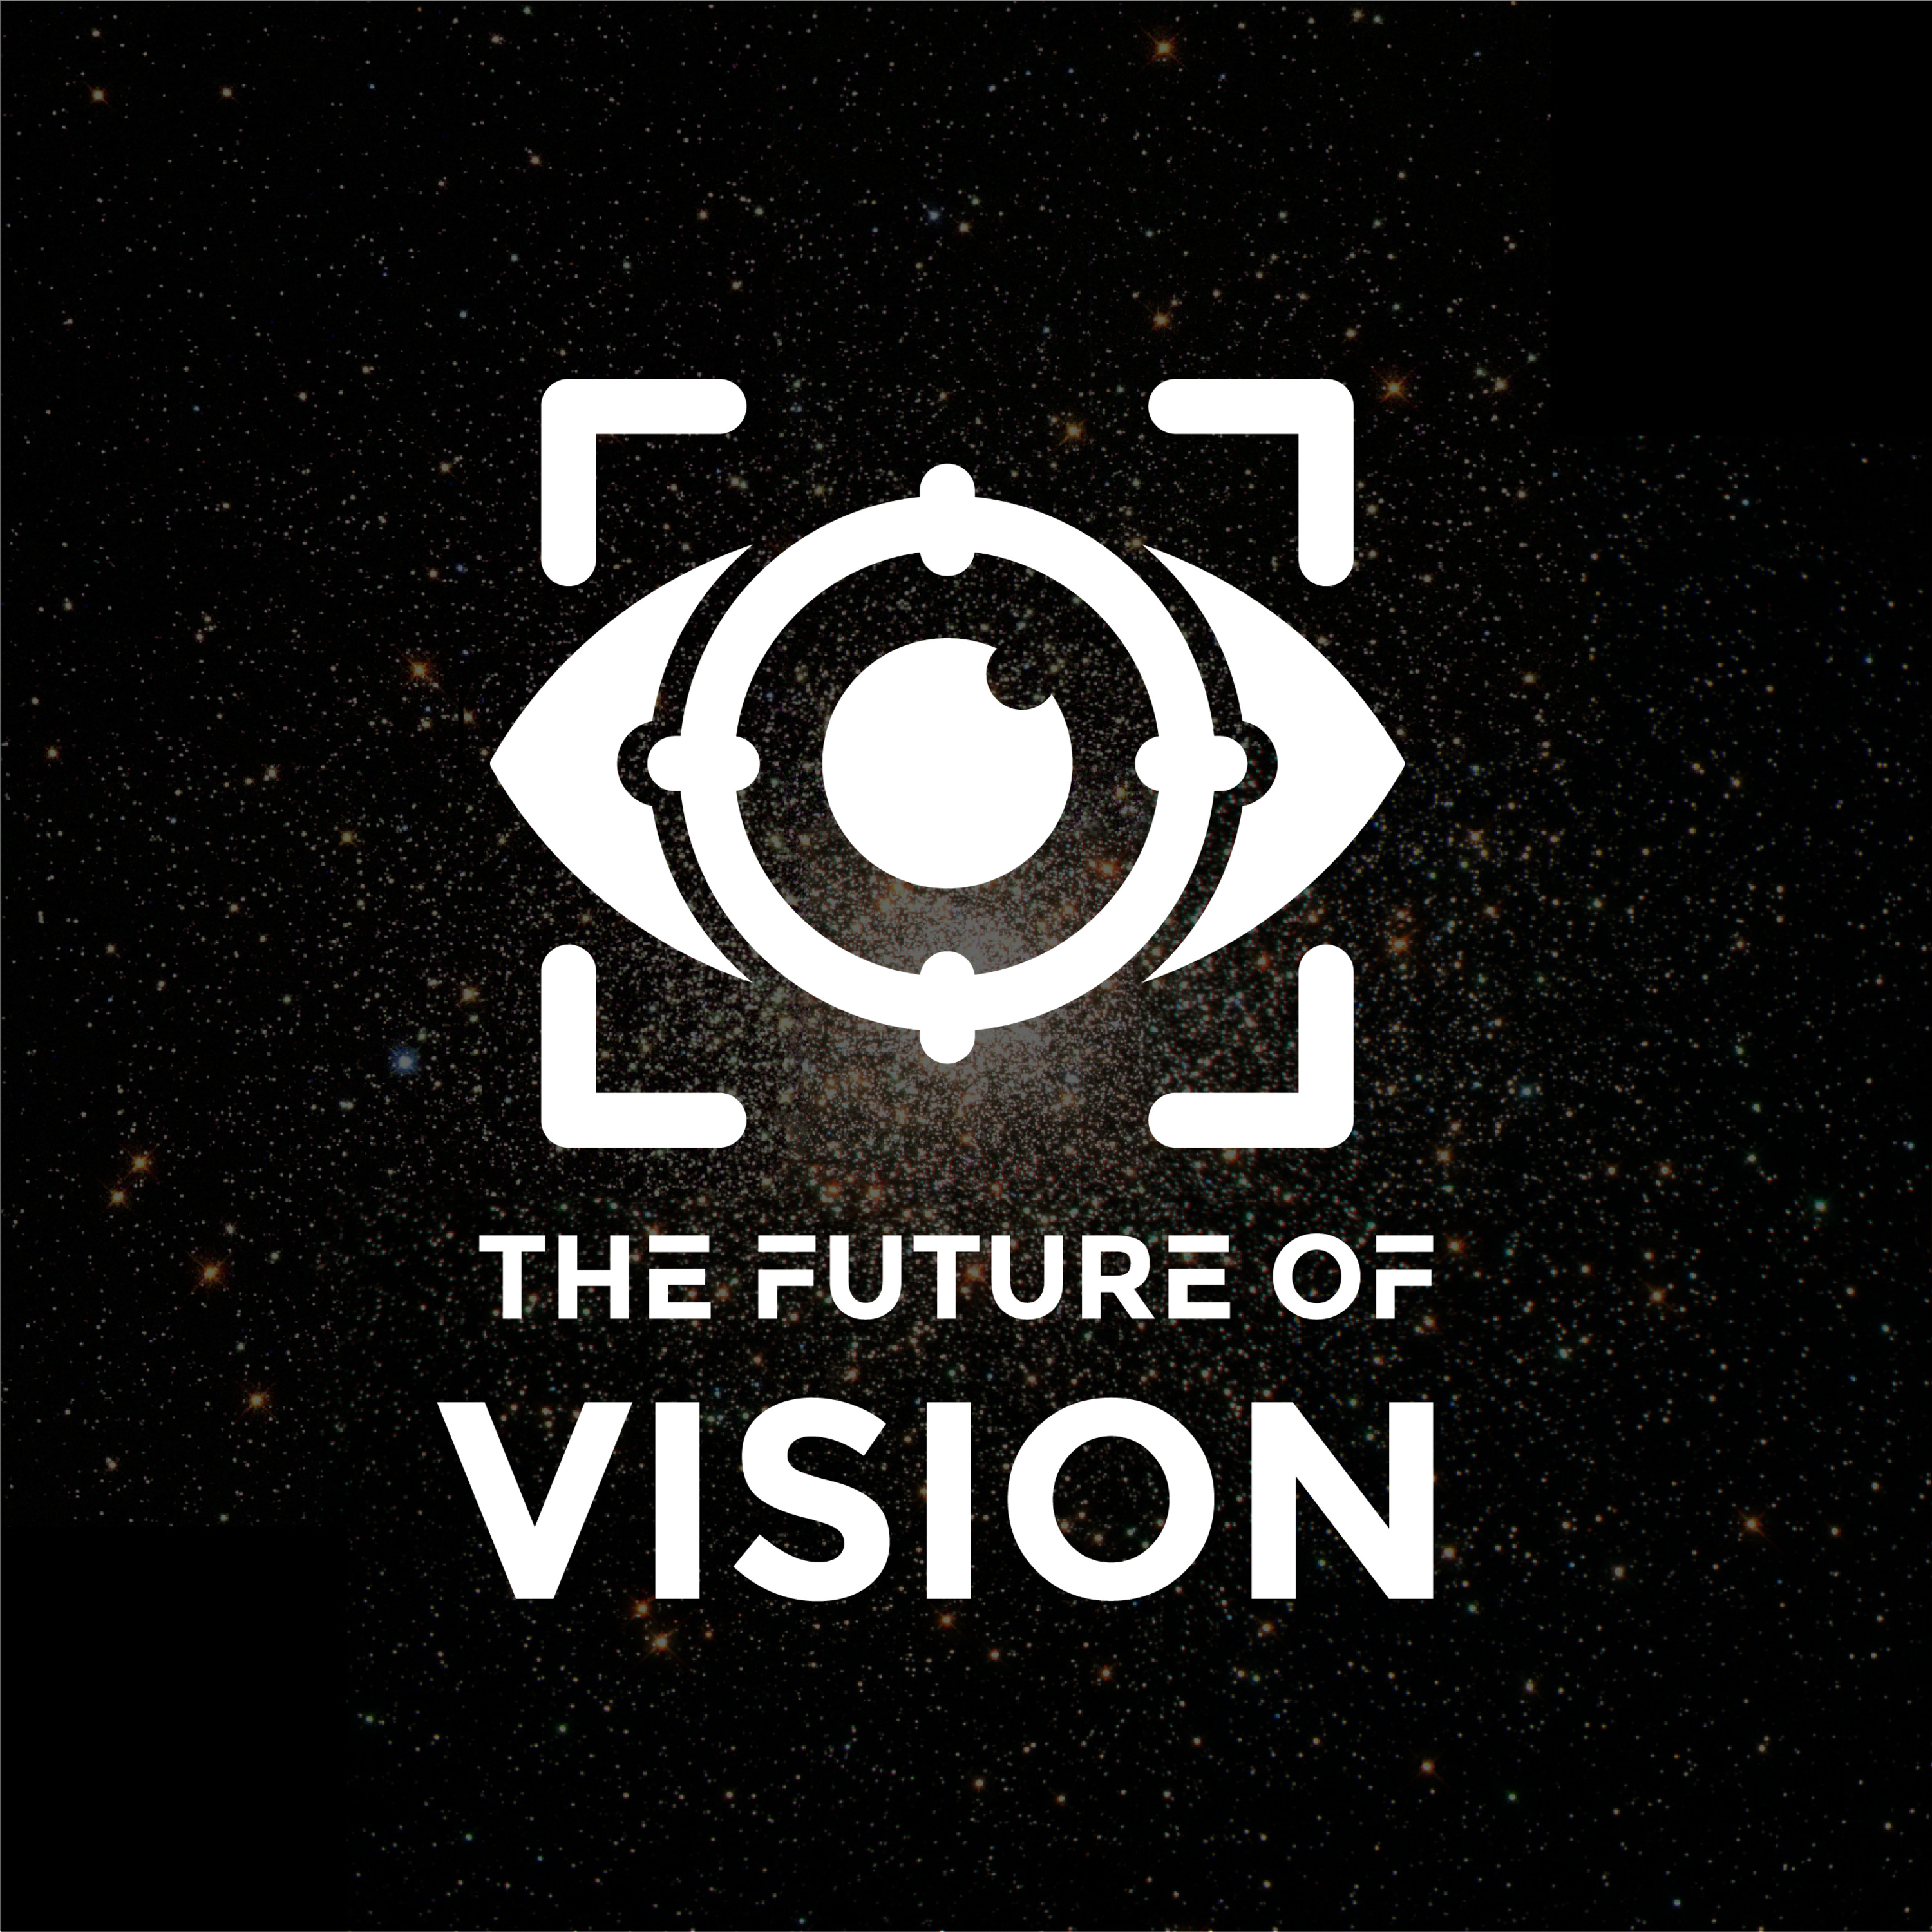 Ep. 48 - The Future of Vision